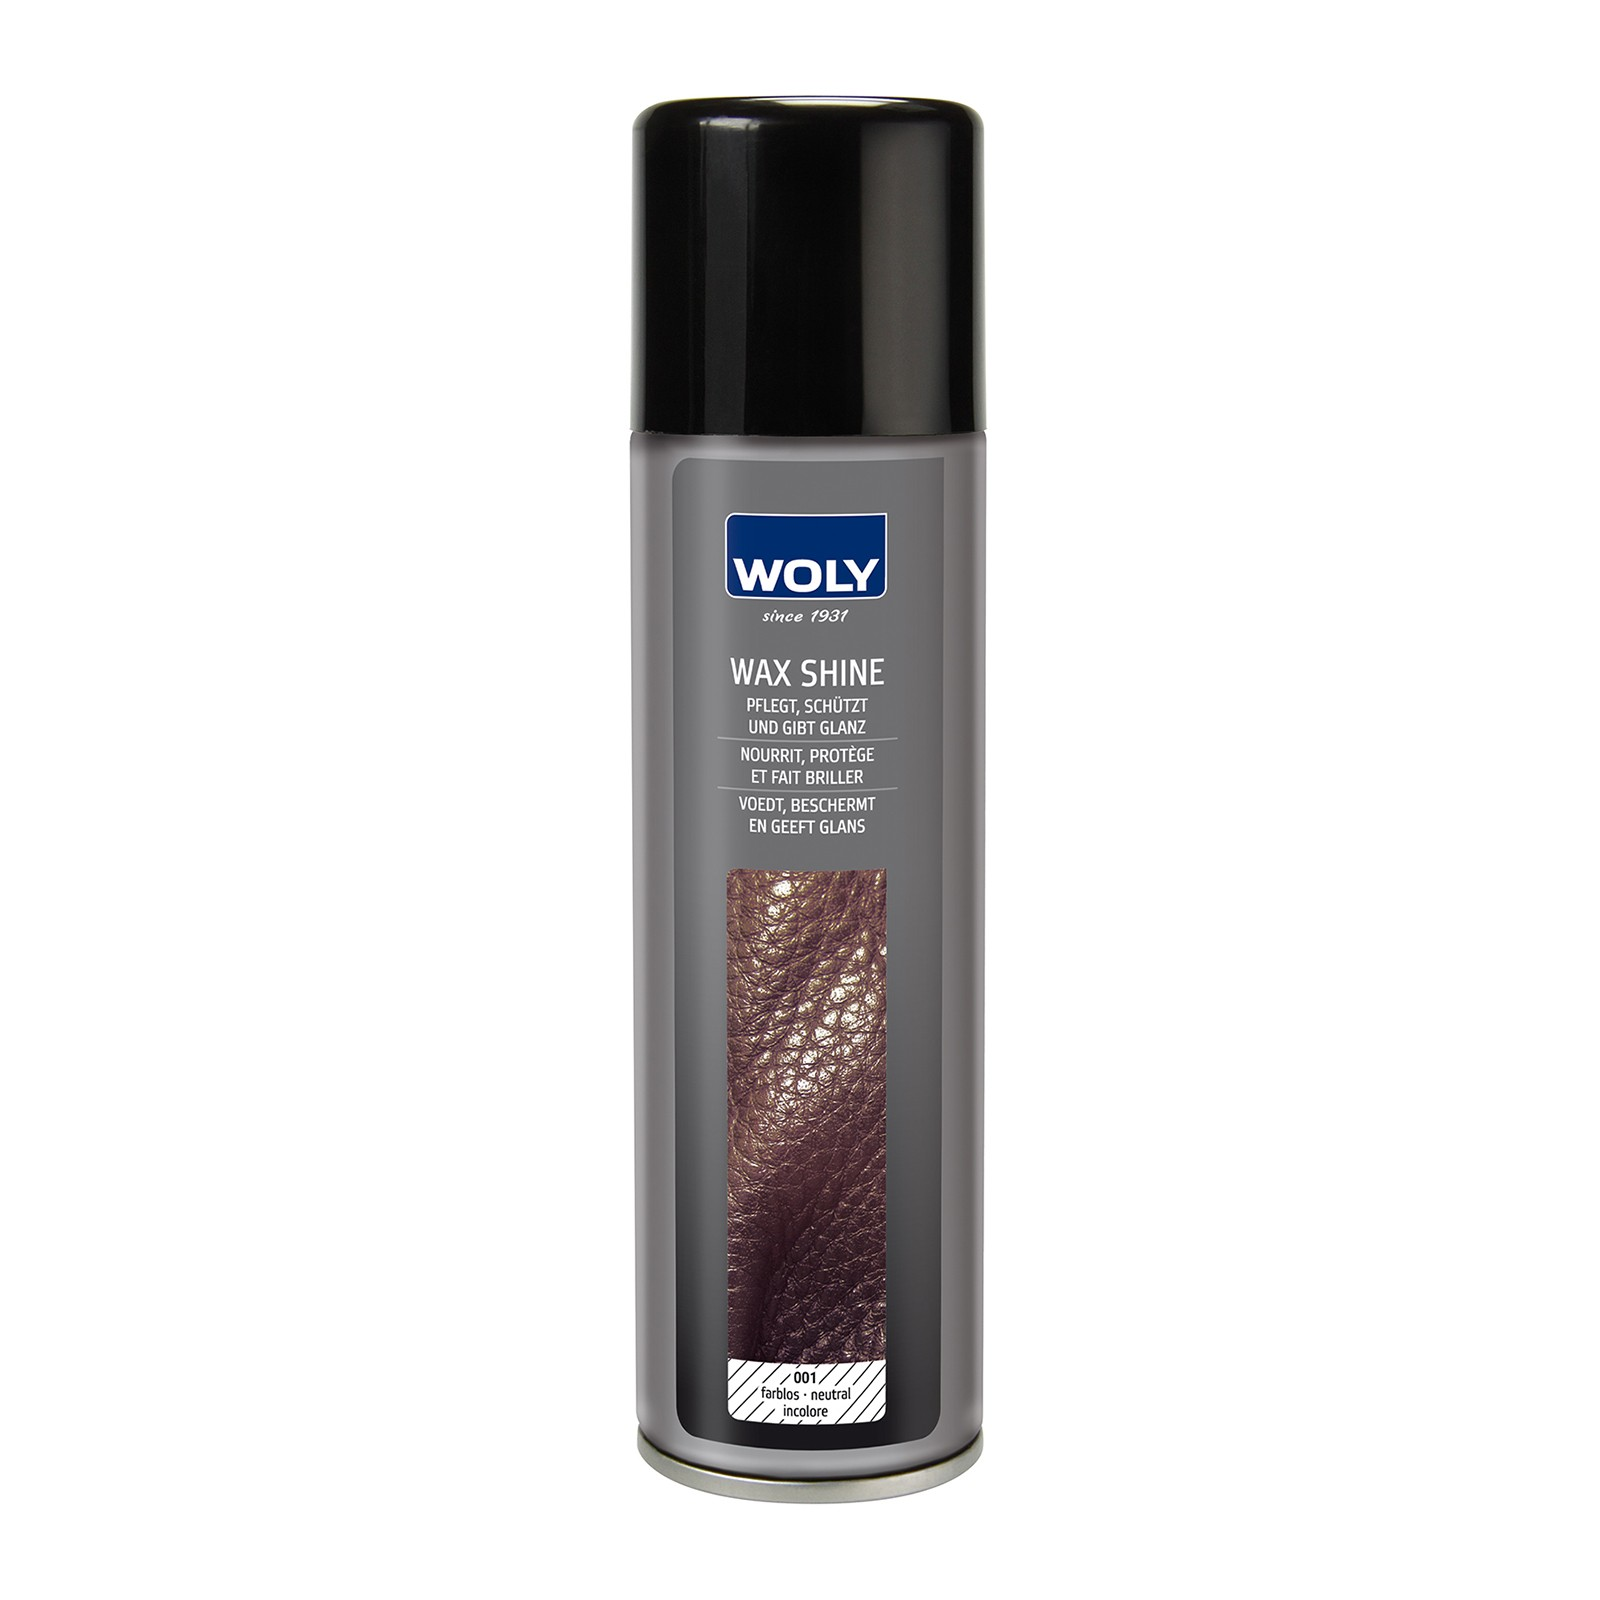 Woly Wax & Shine Neutral Spray